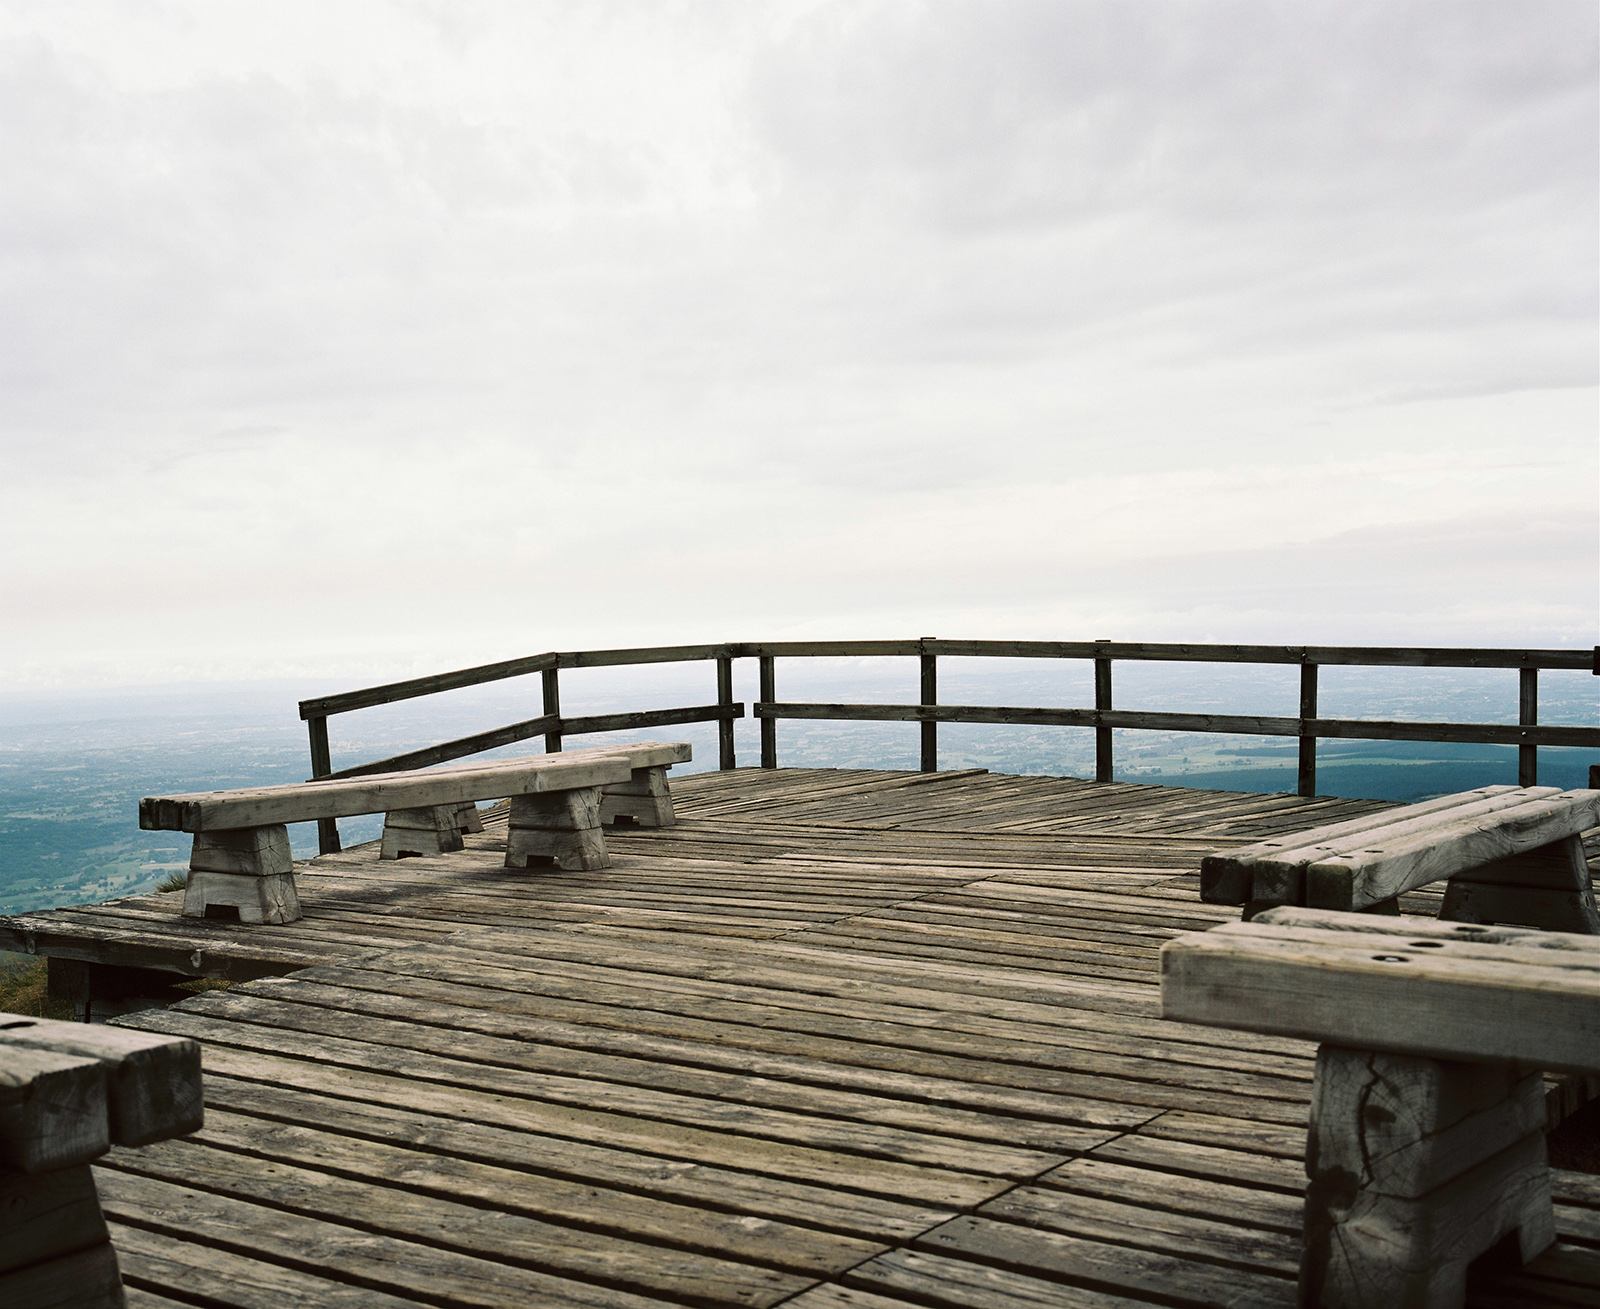 Viewpoint over Massif Central, France 2012 © Tanya Clarke